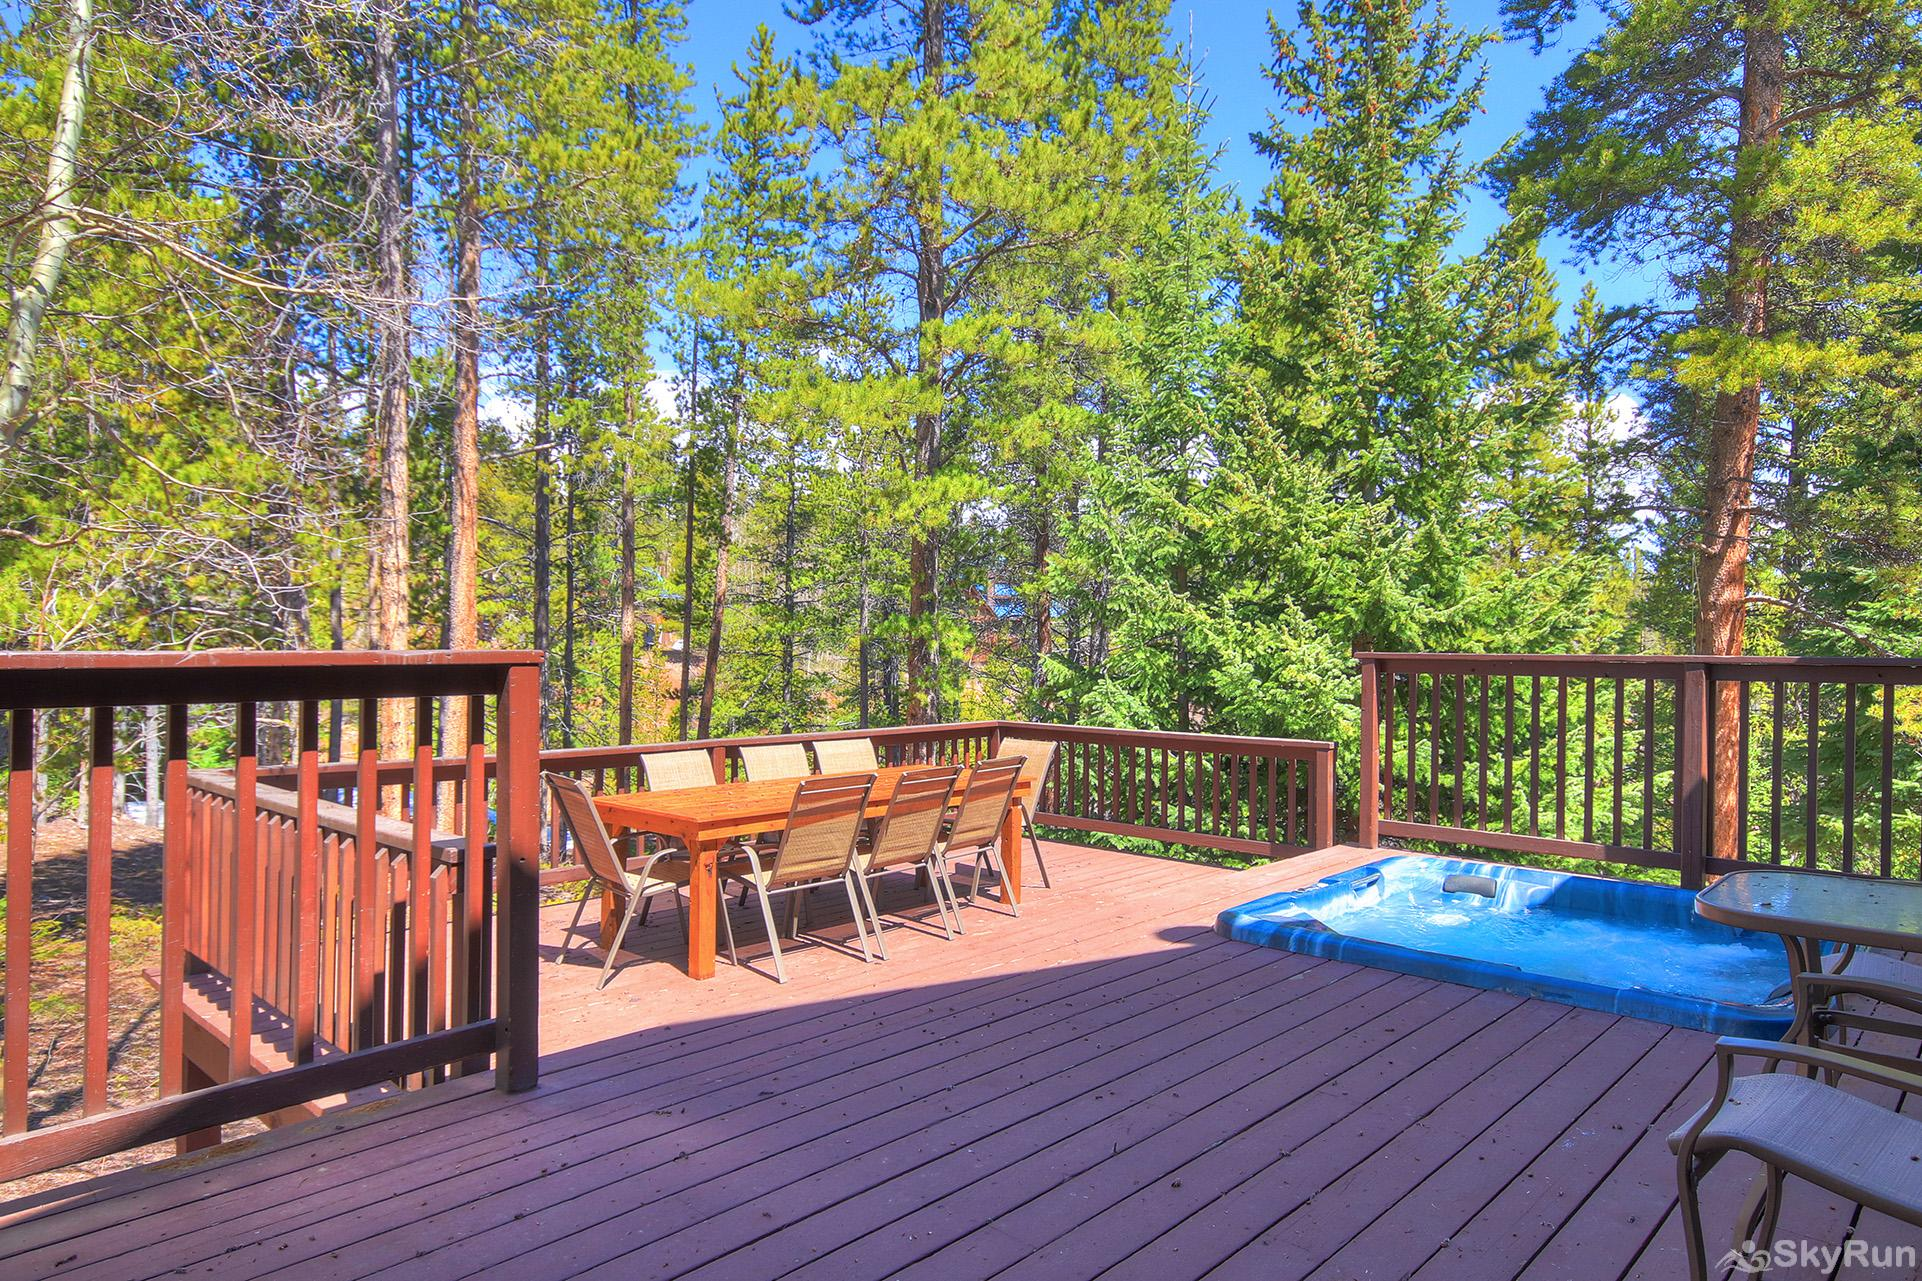 Aspen Heights Lodge Large private back deck with hot tub, propane bbq, seating